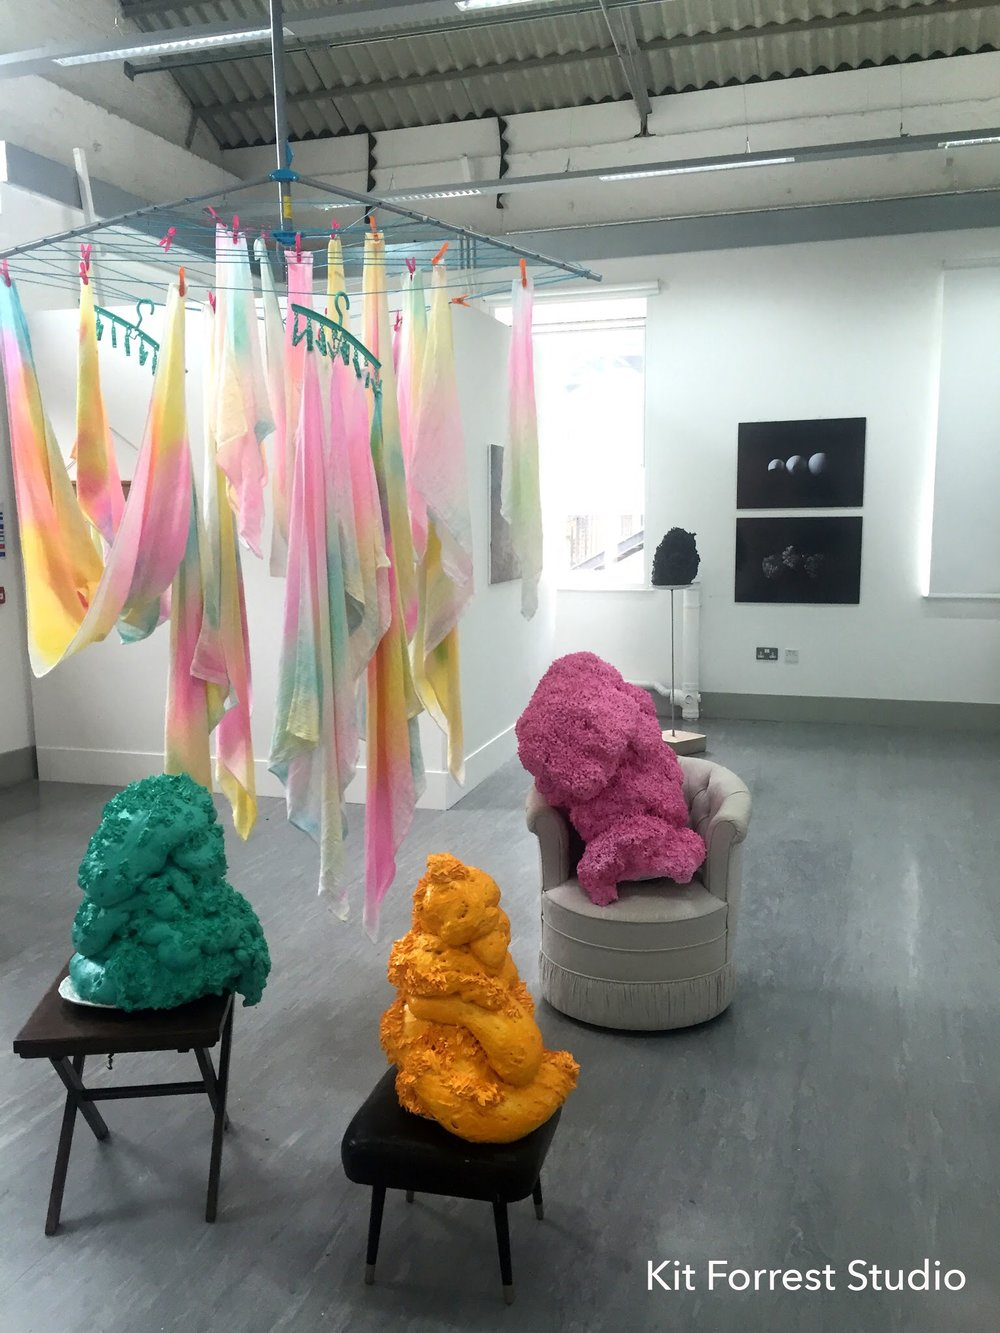 The Age Of Austerity - Group Show, 'The Age Of Austerity', Chatham Historic Dockyard, June 2016From left to right, Airing Dirty Laundry, Paint Goddesses